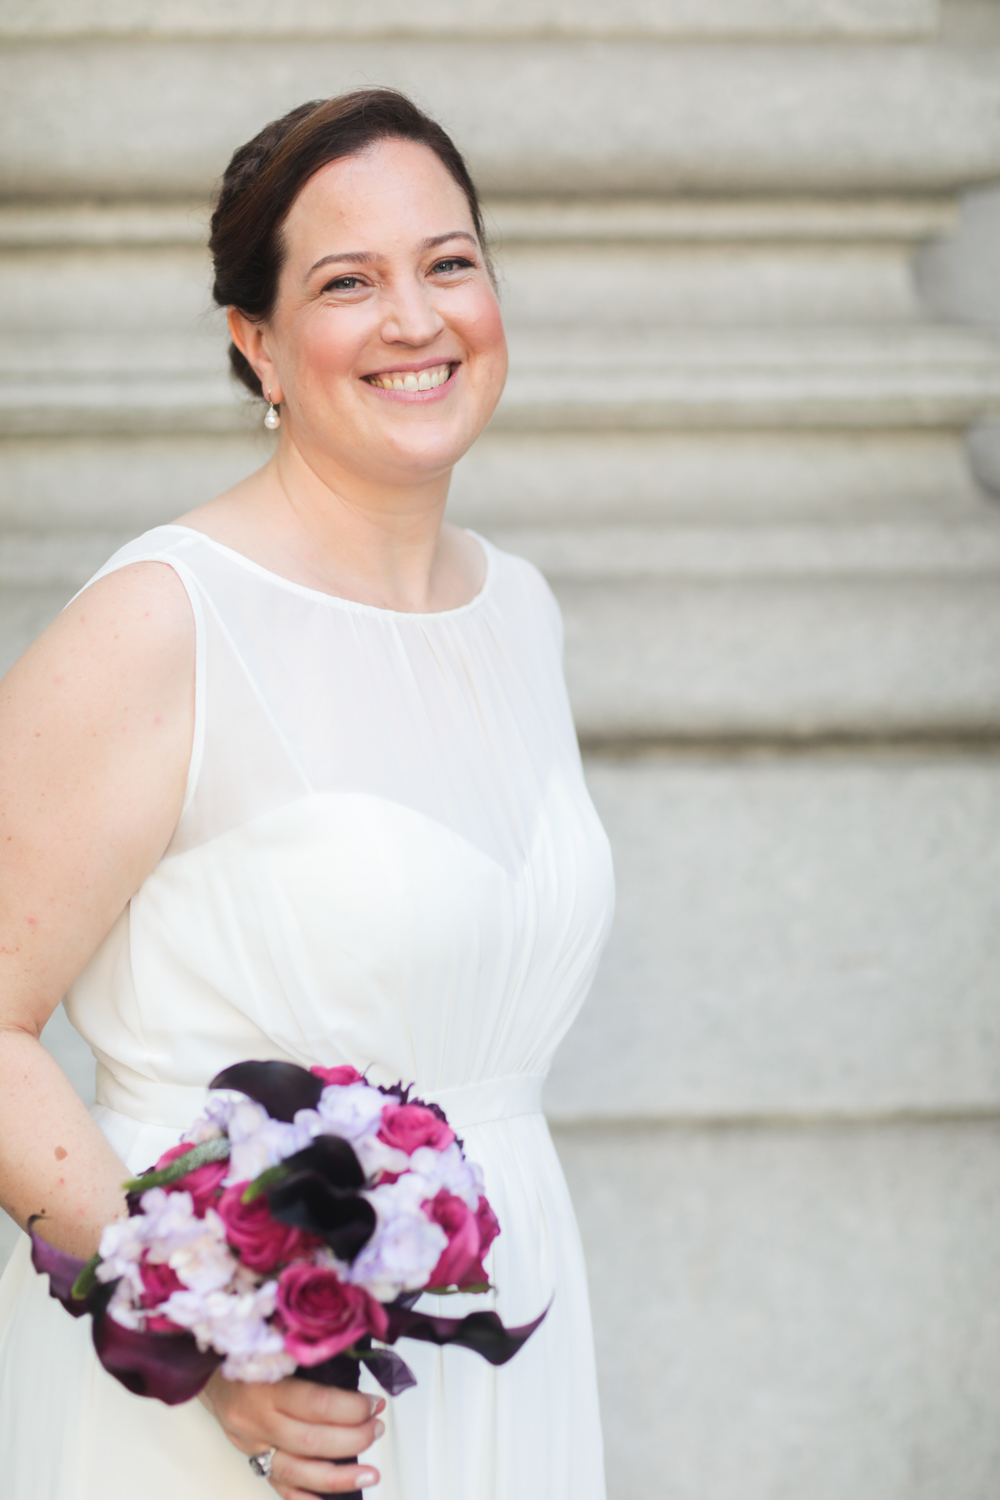 Portrait of a bride carrying a pink and purple flower bouquet.